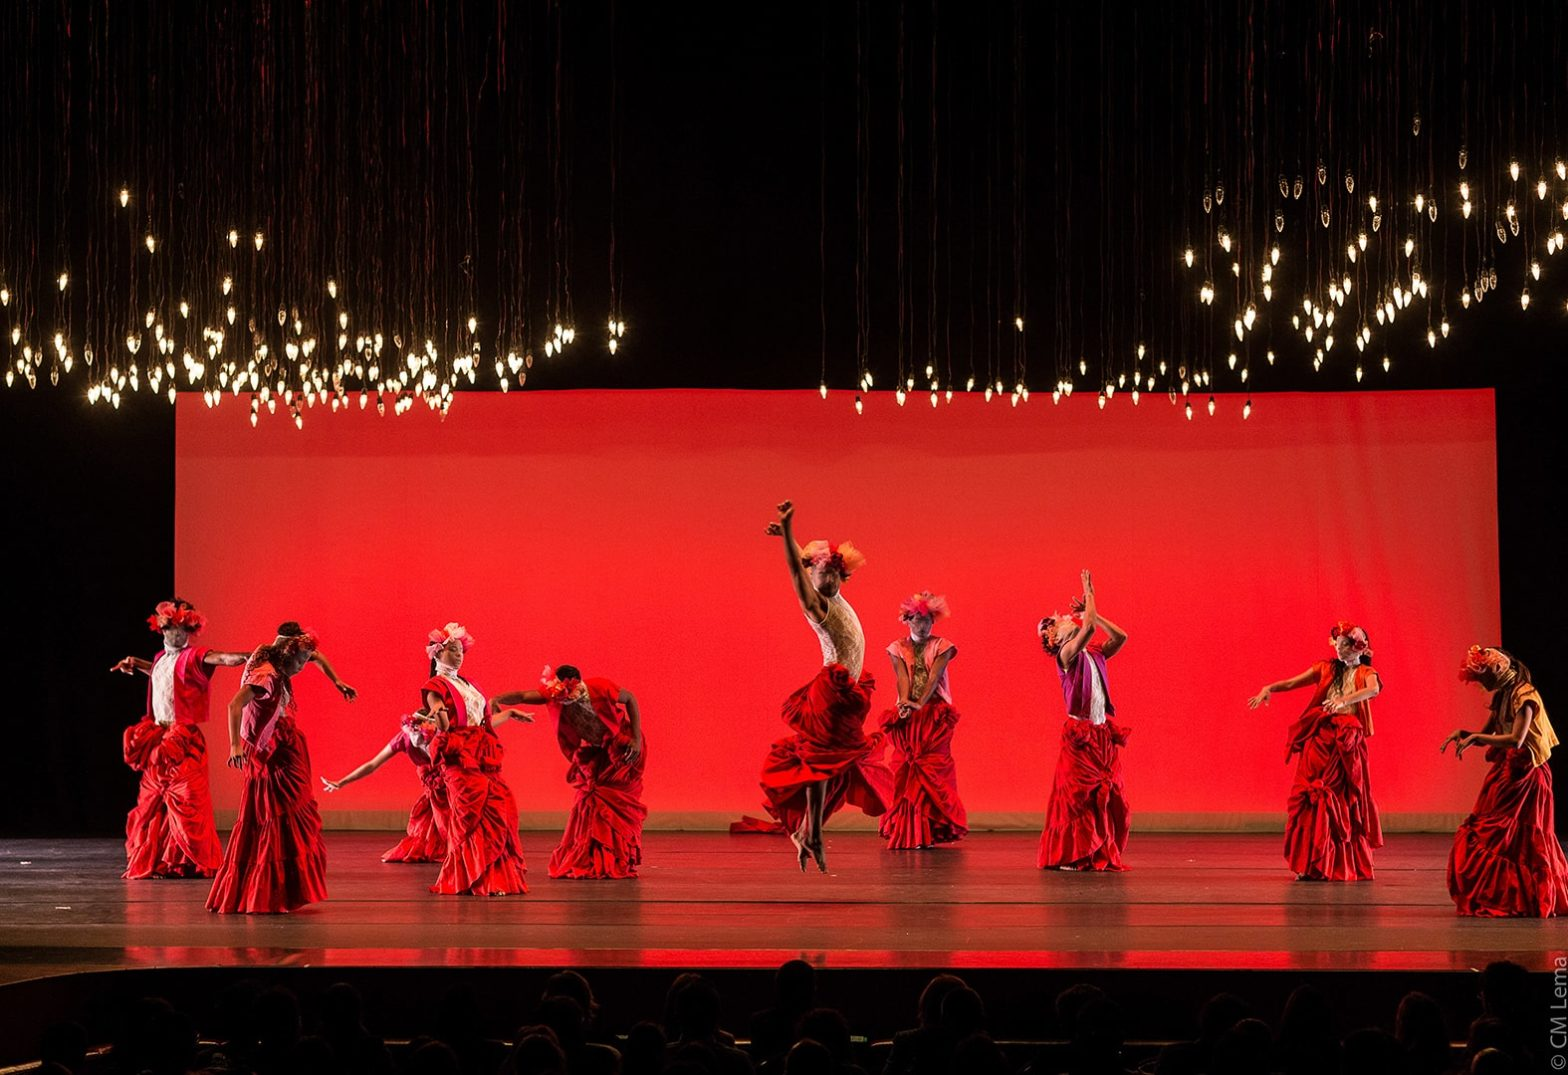 A group of dancers are performing on stage in red dresses. There is a red backdrop on the stage behind them. Orange lights are strung up on the ceiling and hanging above them.